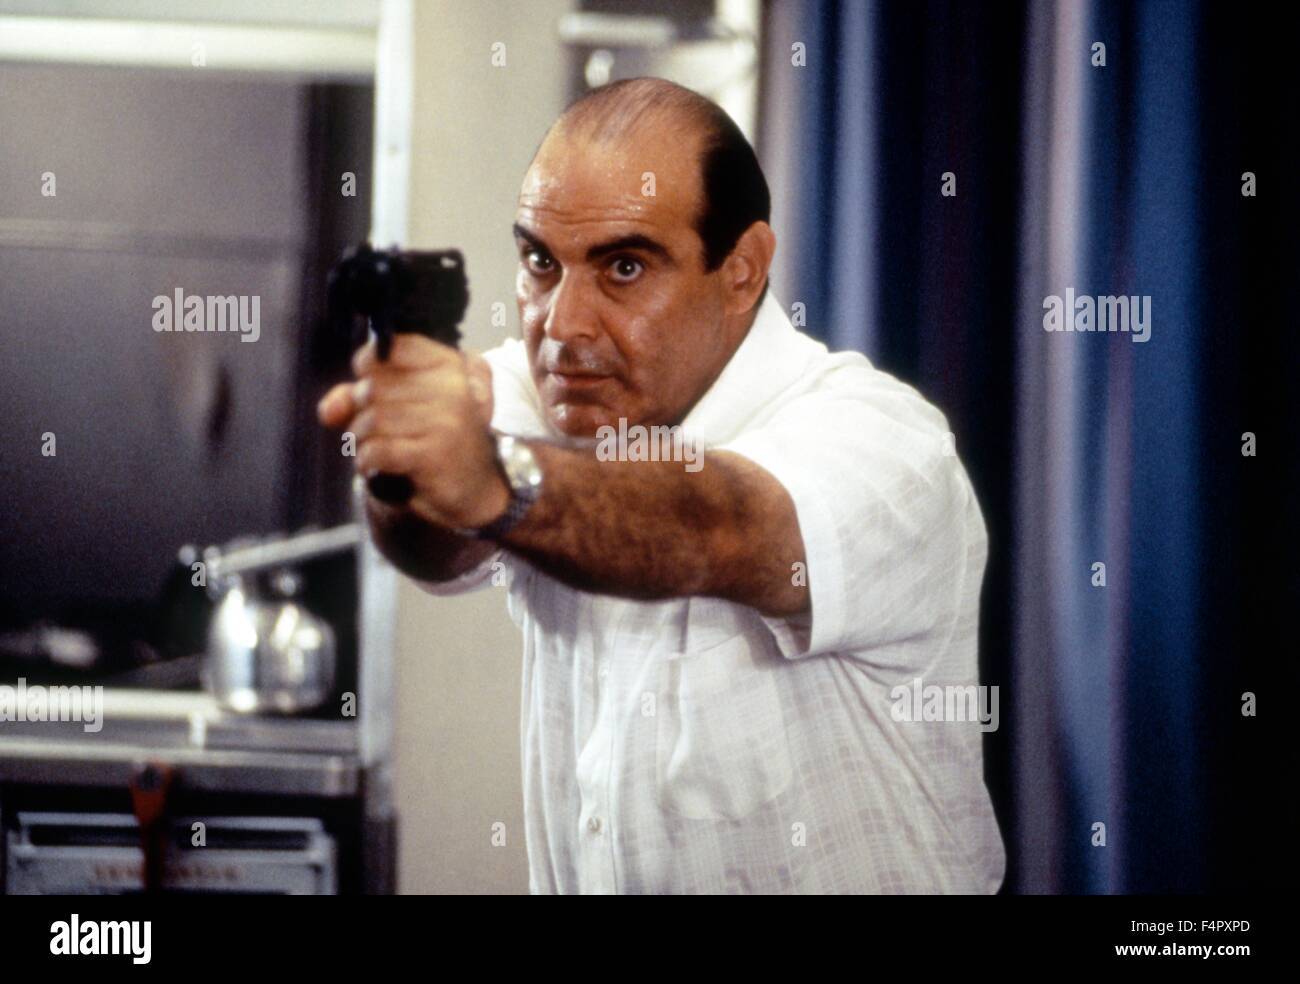 David Suchet / Executive Decision / 1996 / directed by Stuart Baird / [Silver Pictures / Warner Bros. P] - Stock Image